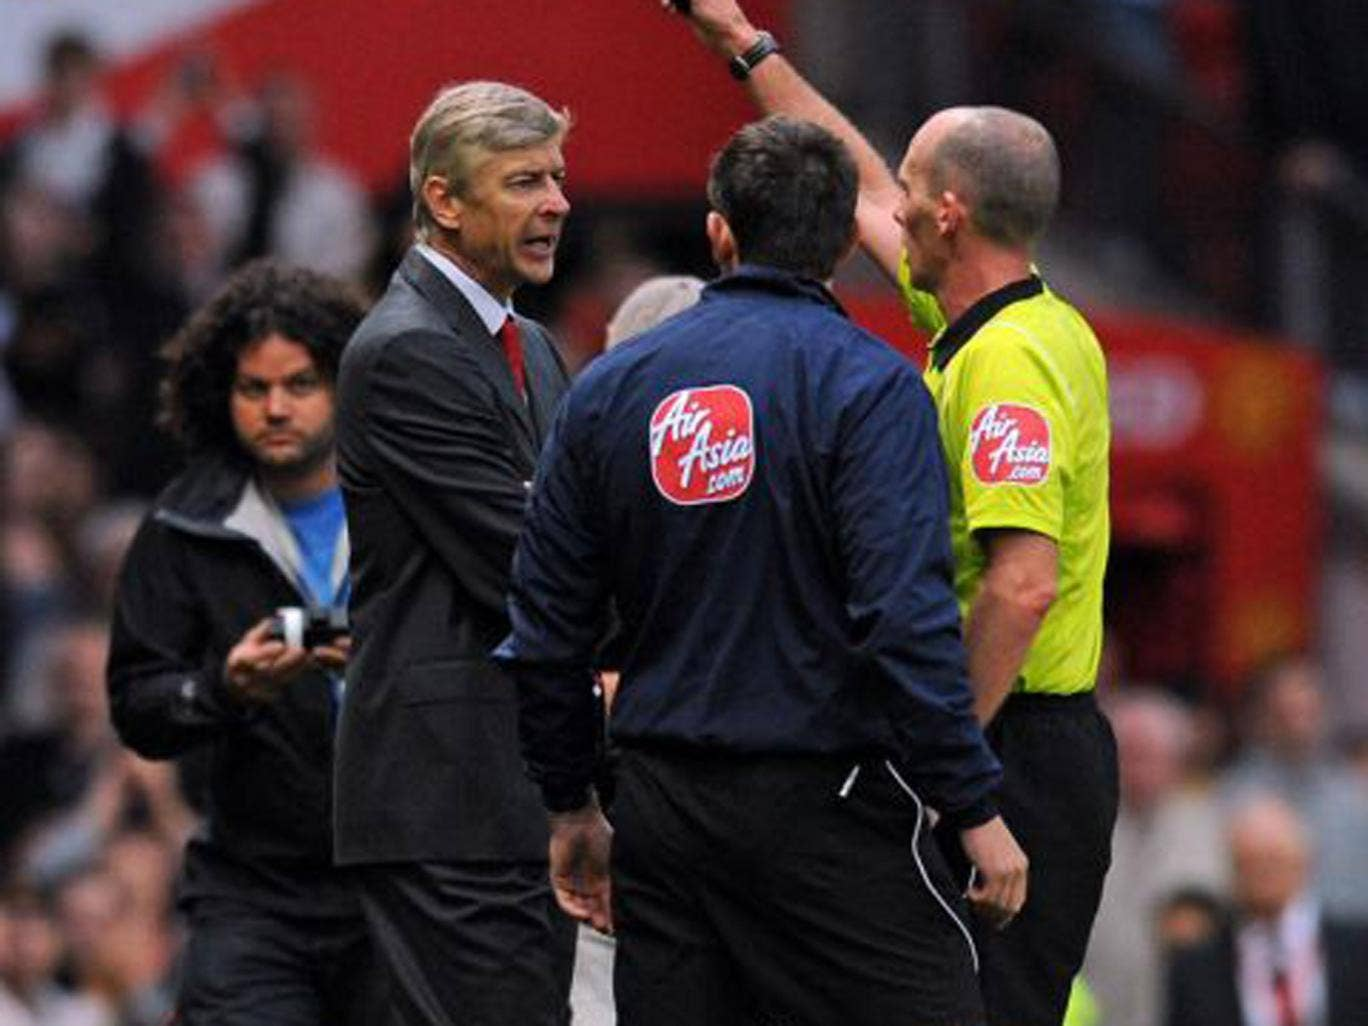 Mike Dean dismisses Wenger in 2-1 loss at Old Trafford in 2009